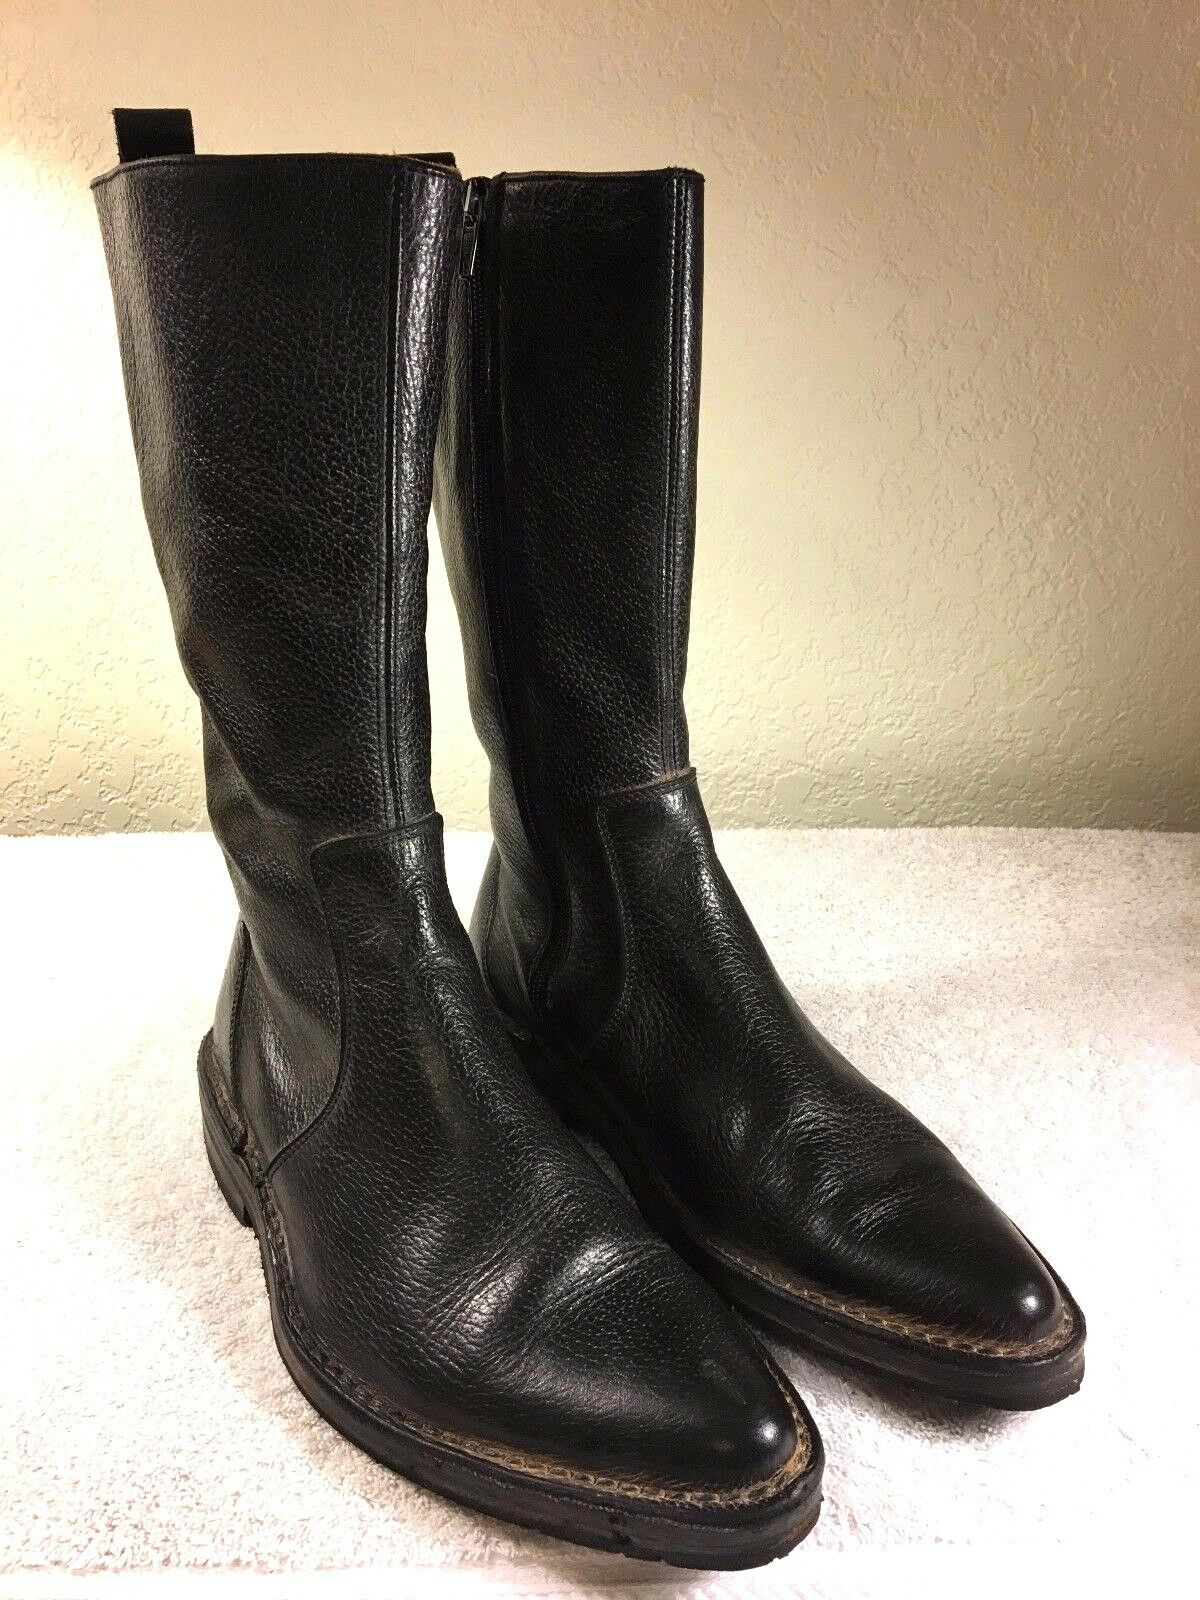 Iramo women's distressed black leather zipper in boots size 39 Made in zipper Italy df06b9